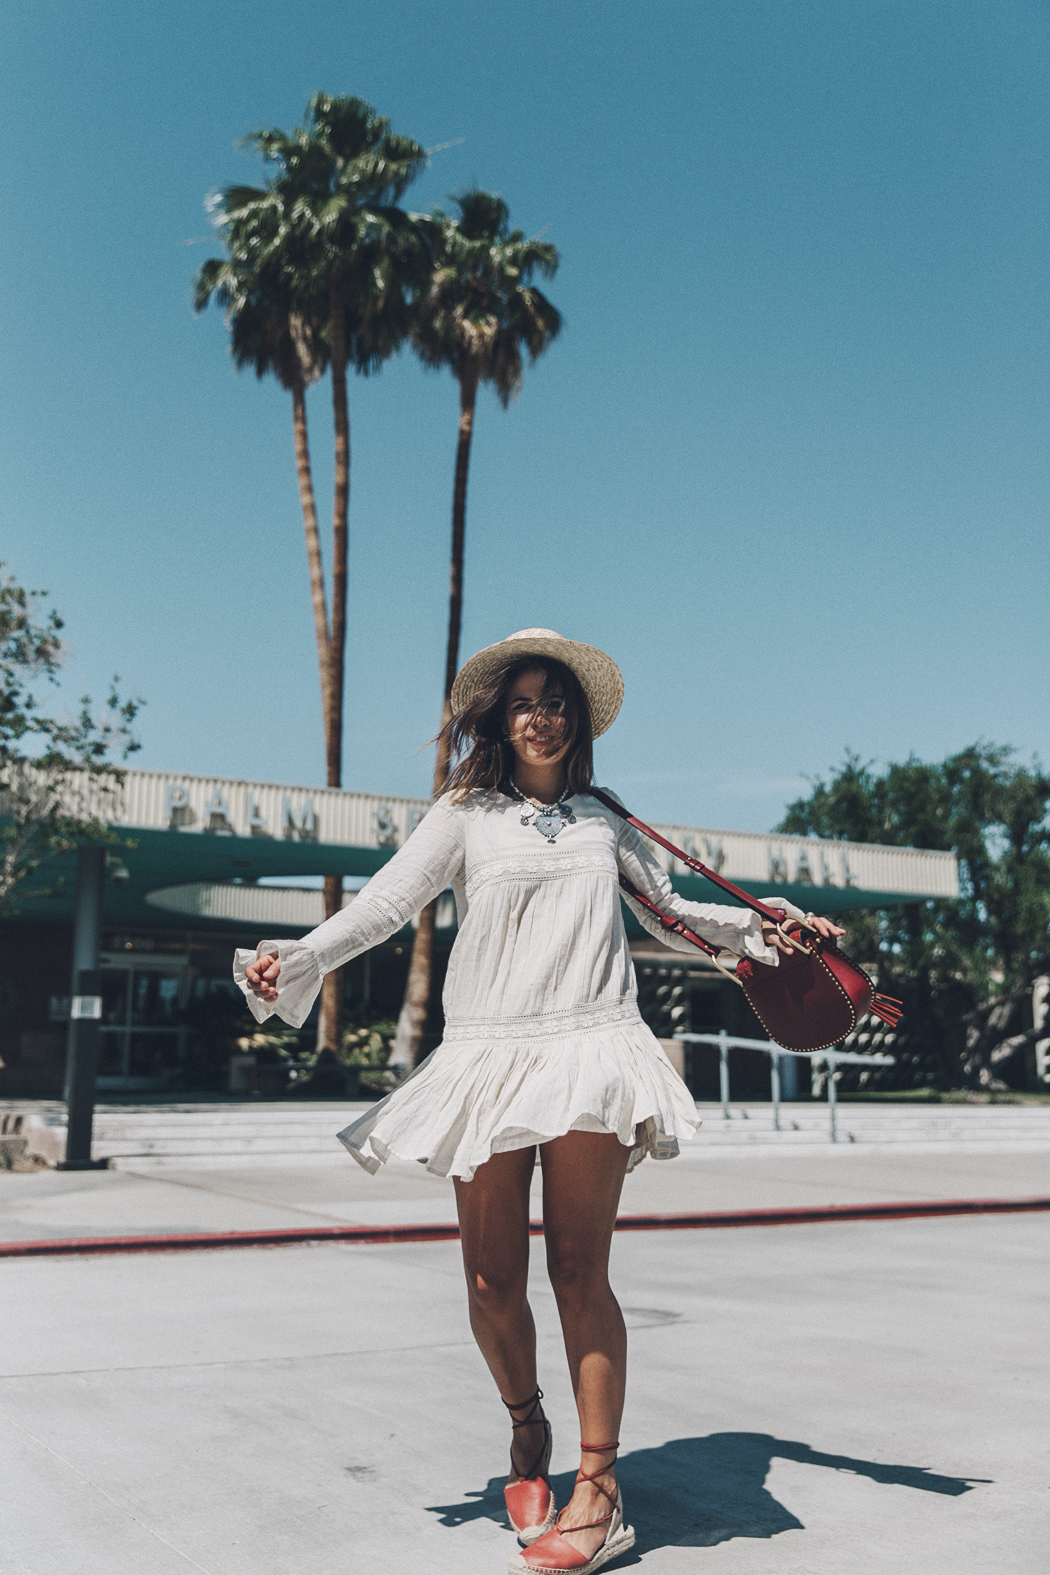 Coachella_2016-Revolve_Clothing-Tula_Rosa_Dress-Boho_Dress-Festival_Outfit-Straw_Hat-Soludos_Espadrilles-Collage_Vintage-18